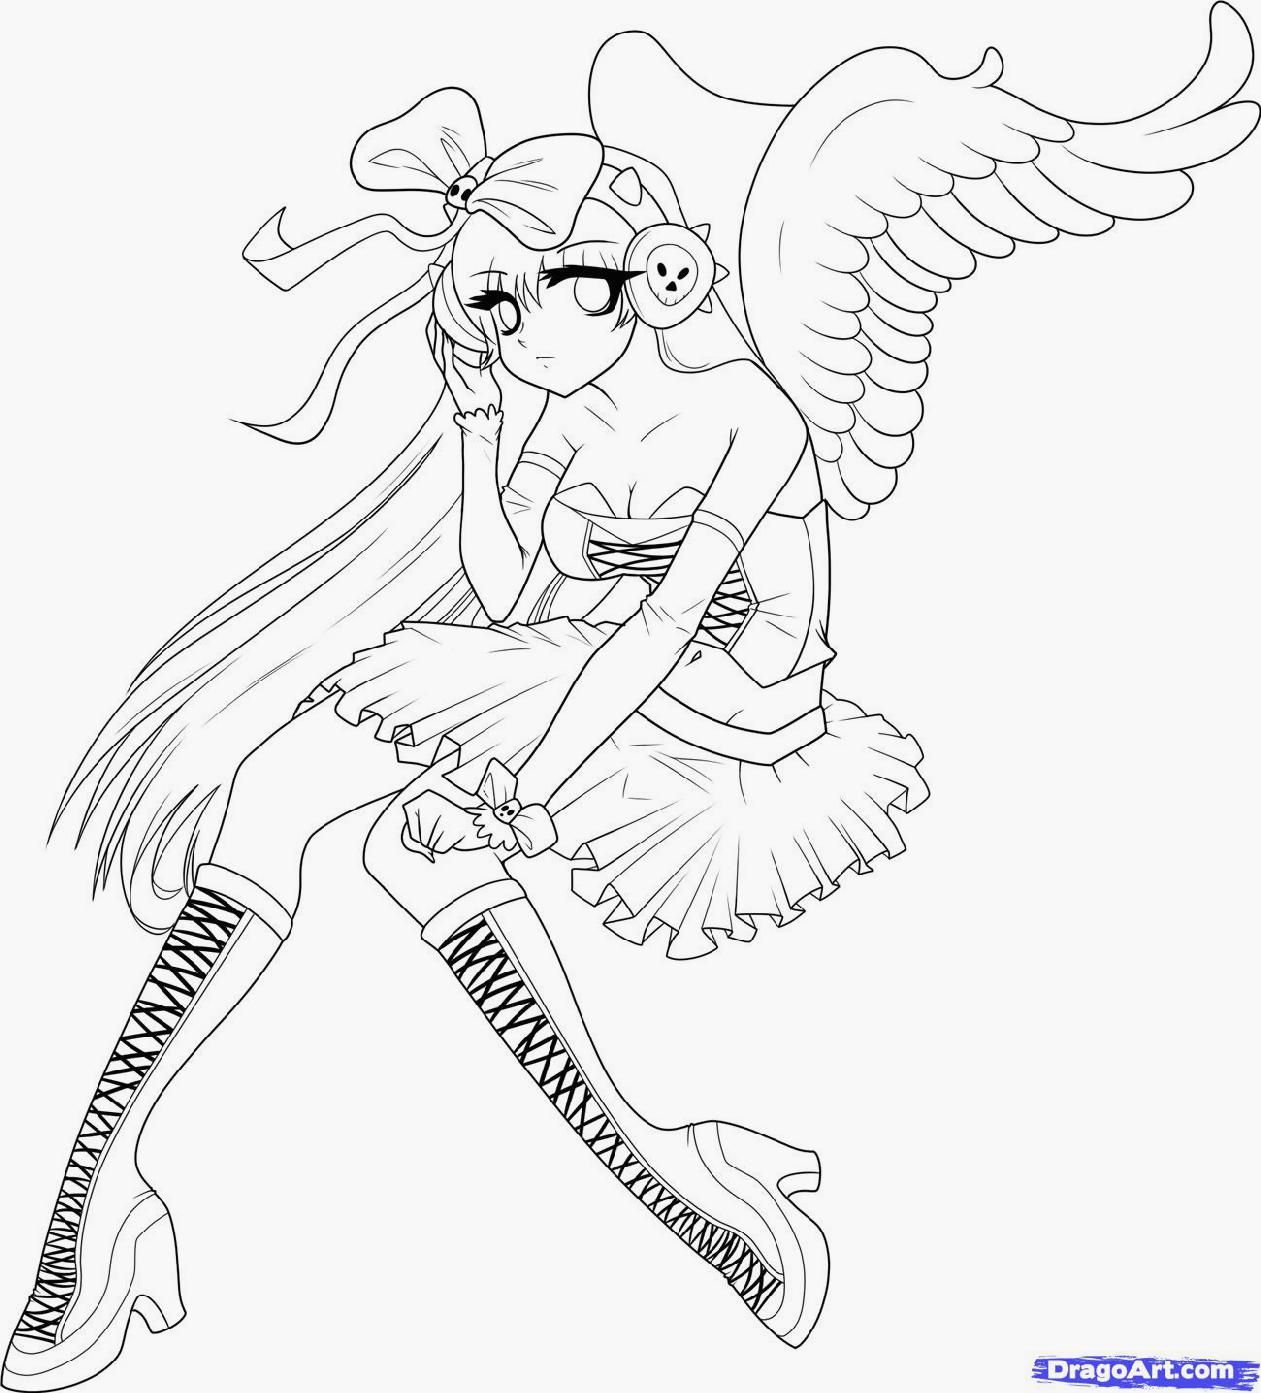 Anime Angel Coloring Pages To Print - Coloring Pages For All Ages